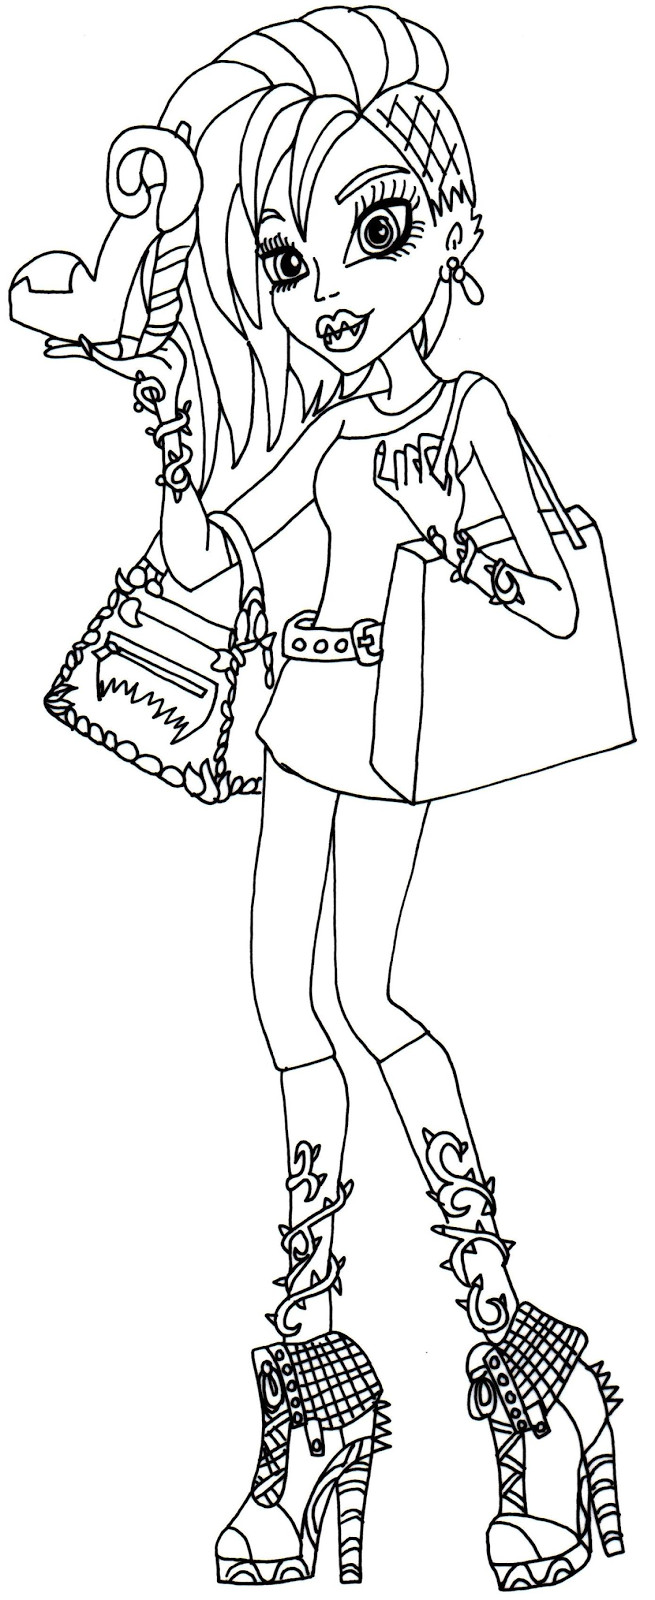 Monster High Printable Coloring Pages  Free Printable Monster High Coloring Pages April 2014